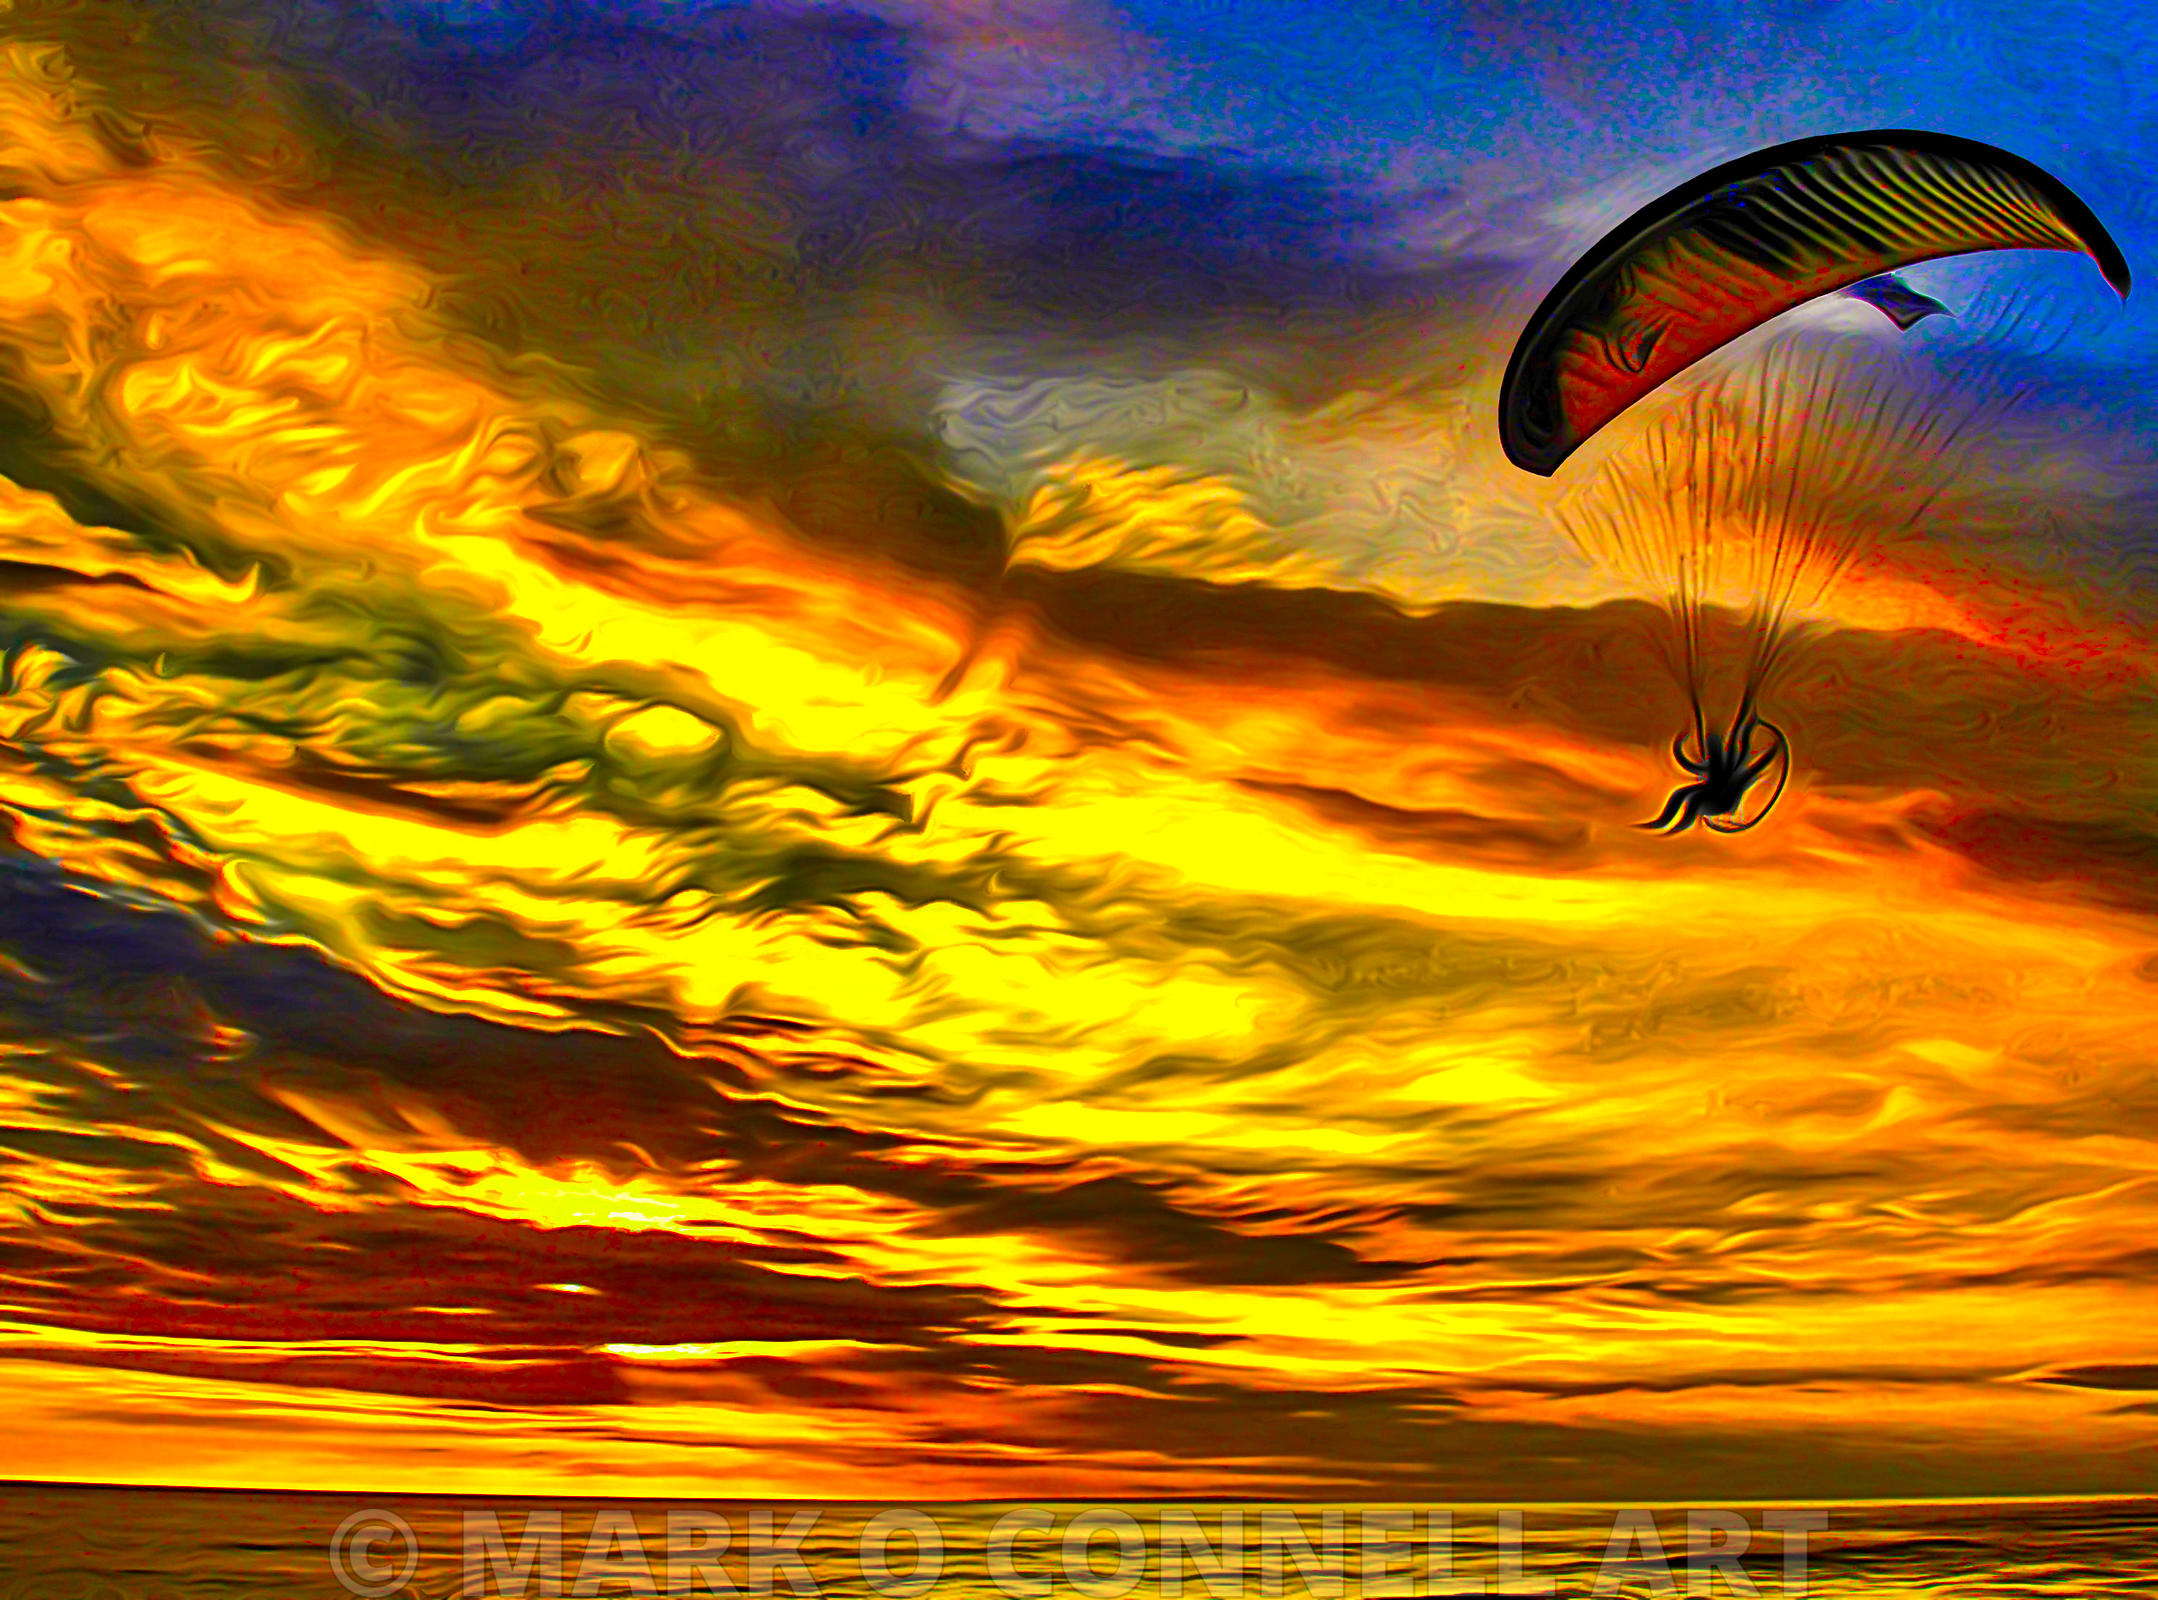 parapenting,art,painting,airbrush,abstract,sunset,sea,ocean,yellow,sky,parachute,clouds